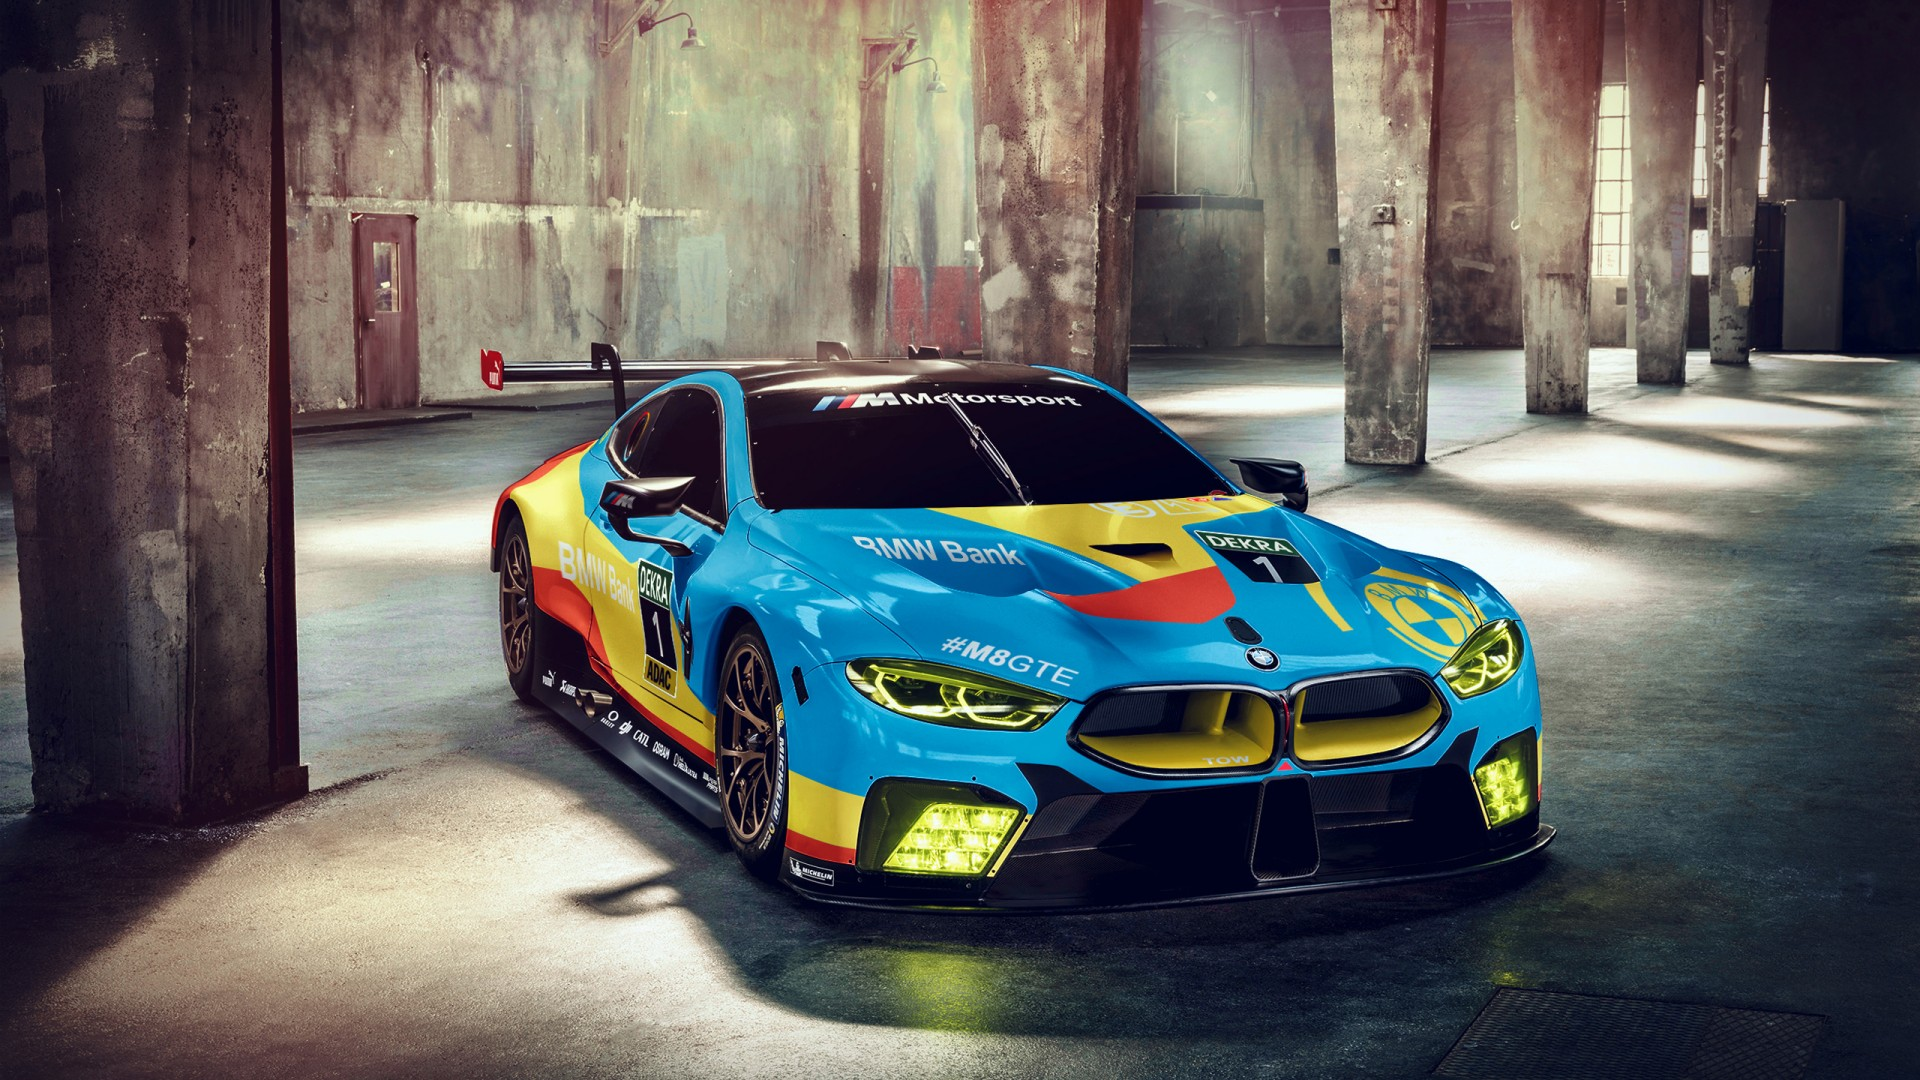 BMW M8 GTE 2018 Wallpaper